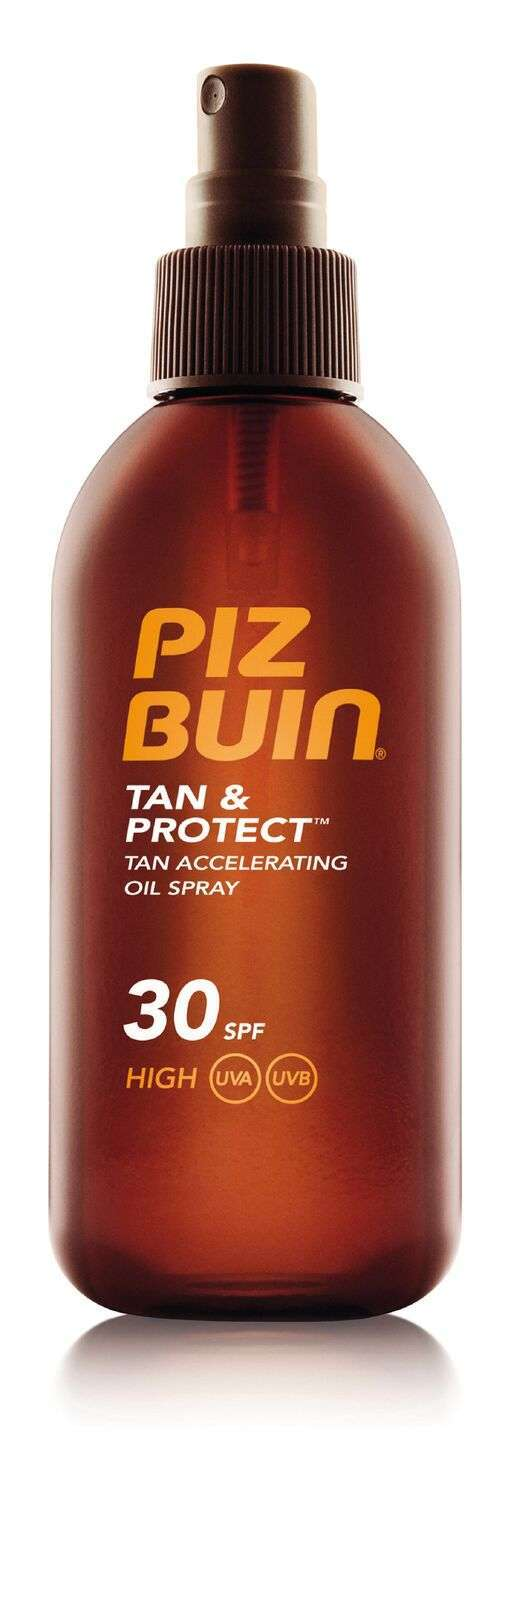 Piz Buin, Tan & Protect: Tan  accelerating oil spray